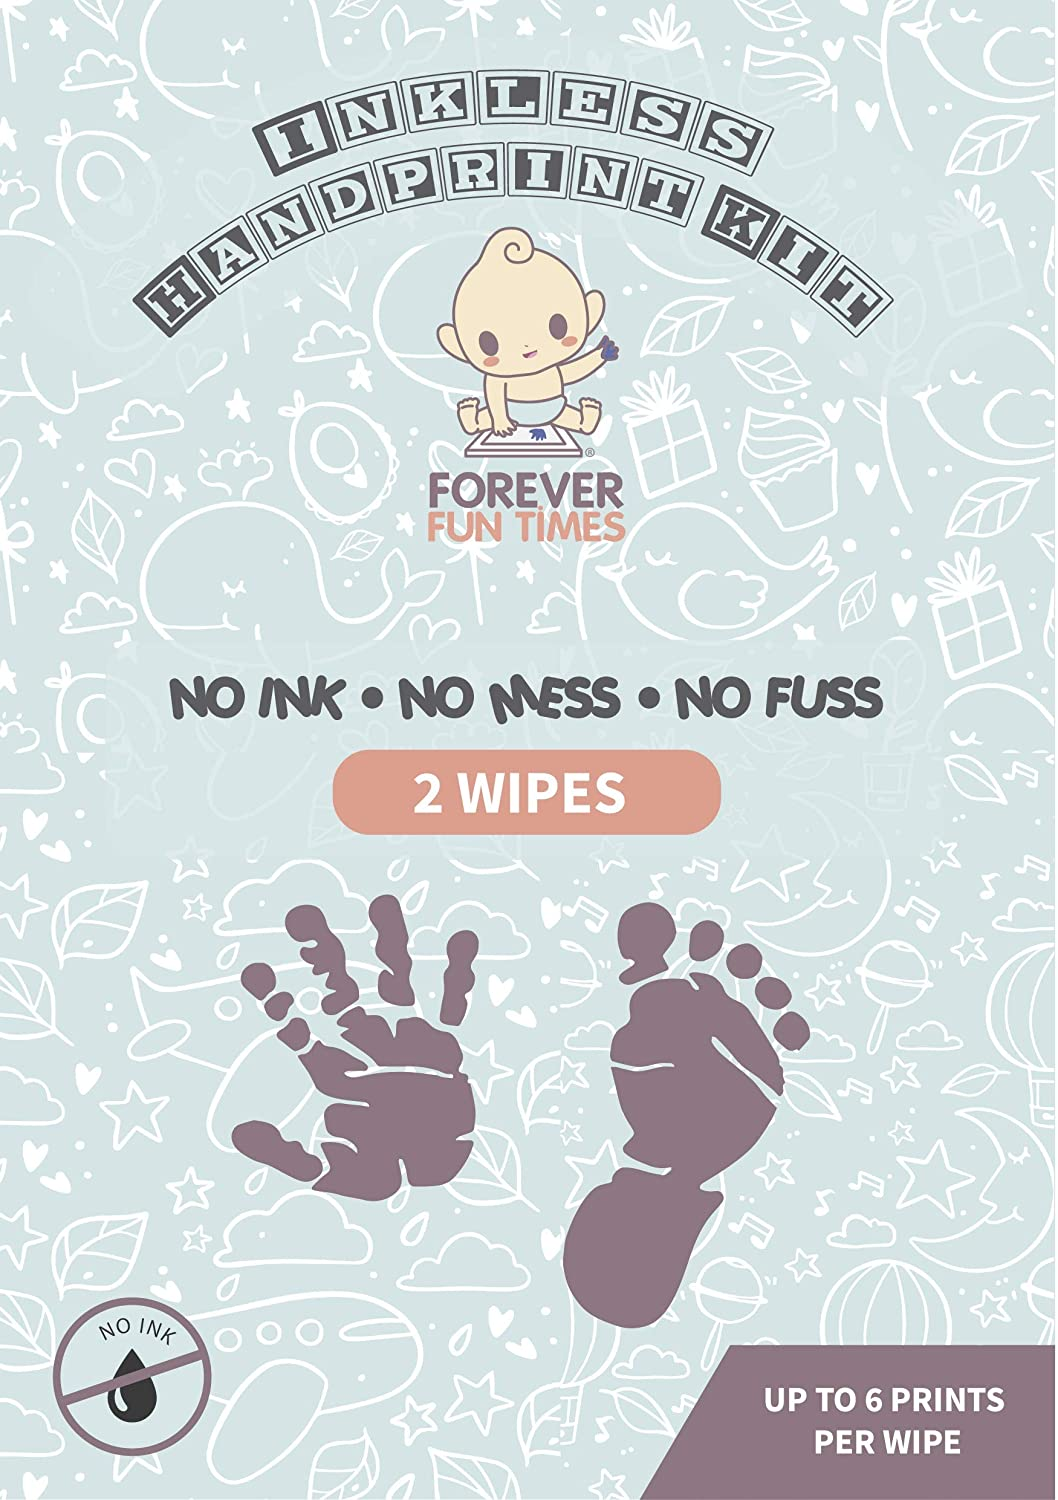 Baby Inkless Print Kit with 2 Special Wipes by Forever Fun Times | Get Detailed Prints with None of The Mess | Baby Hand and Footprint Kit with 8 20.6x14cm Sheets of Paper